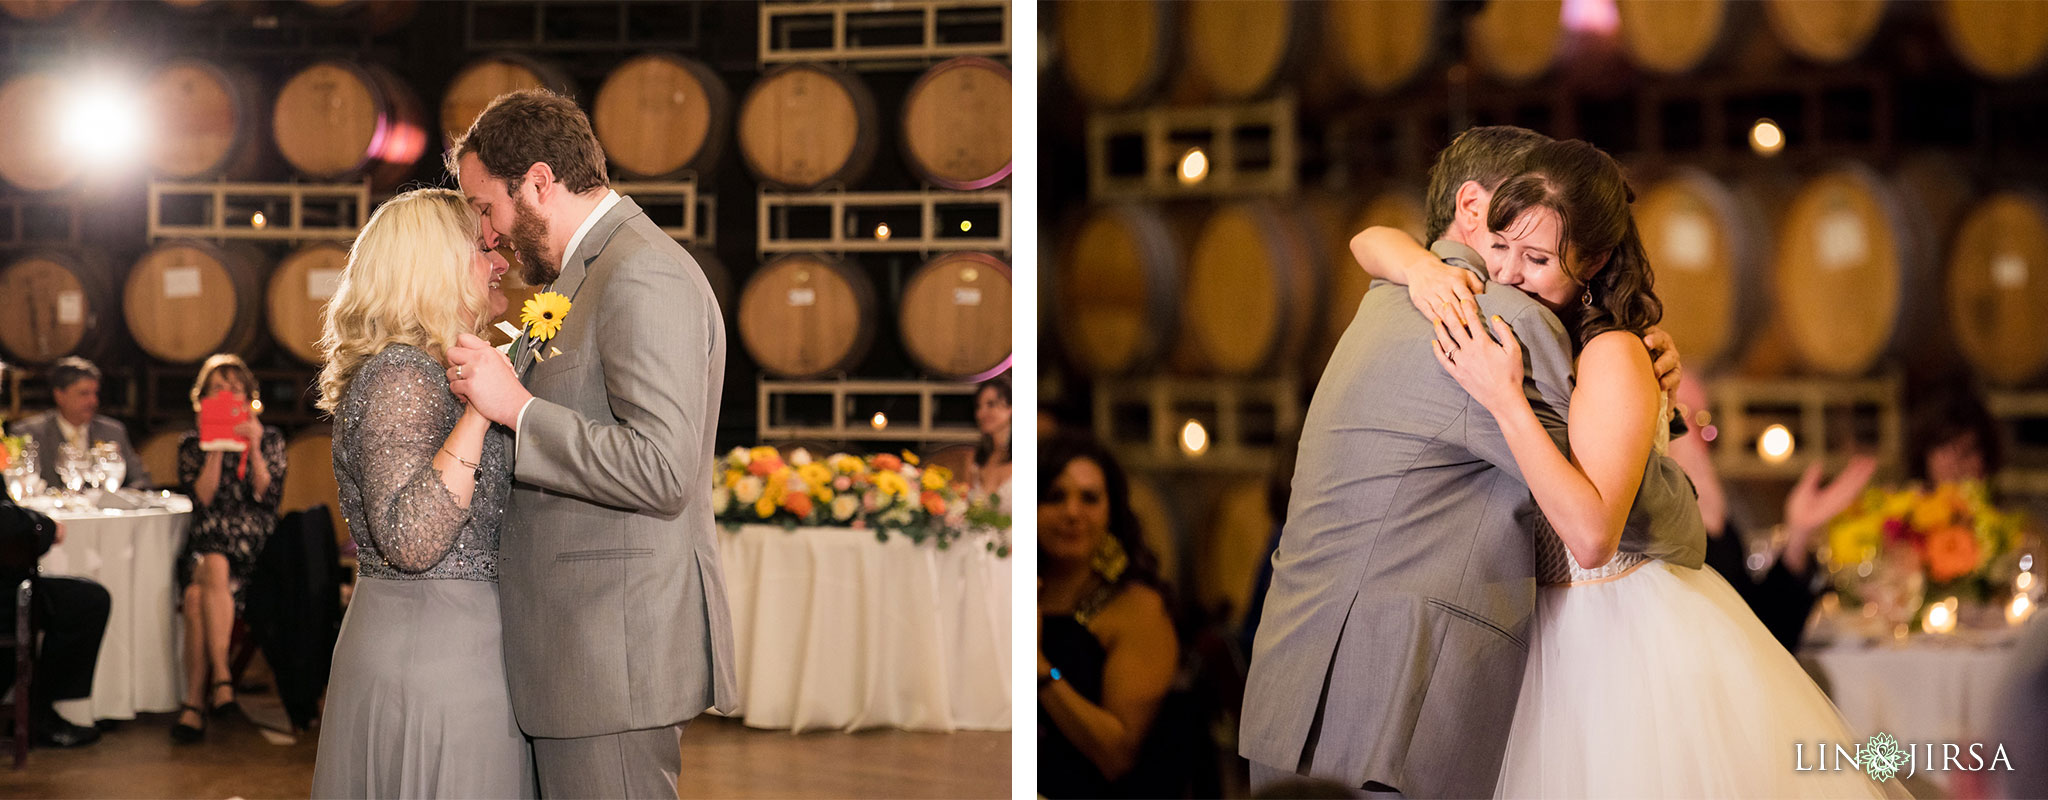 35 leoness cellars temecula wedding reception photography